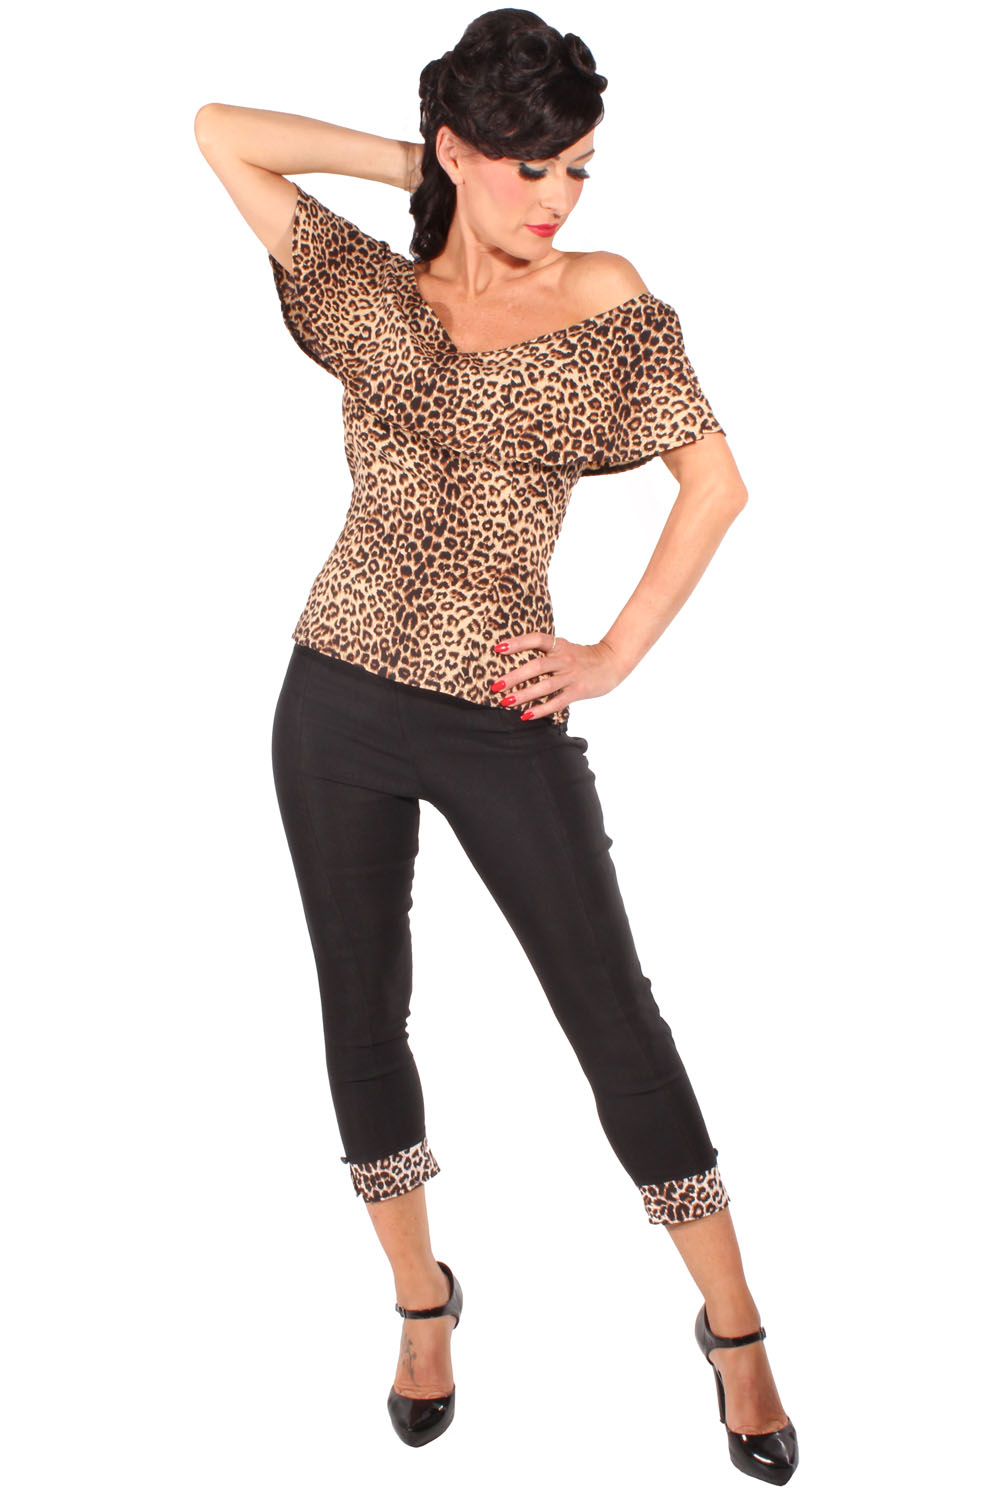 Leo rockabilly Volant Shirt retro Leoparden Carmen Sommer Top braun